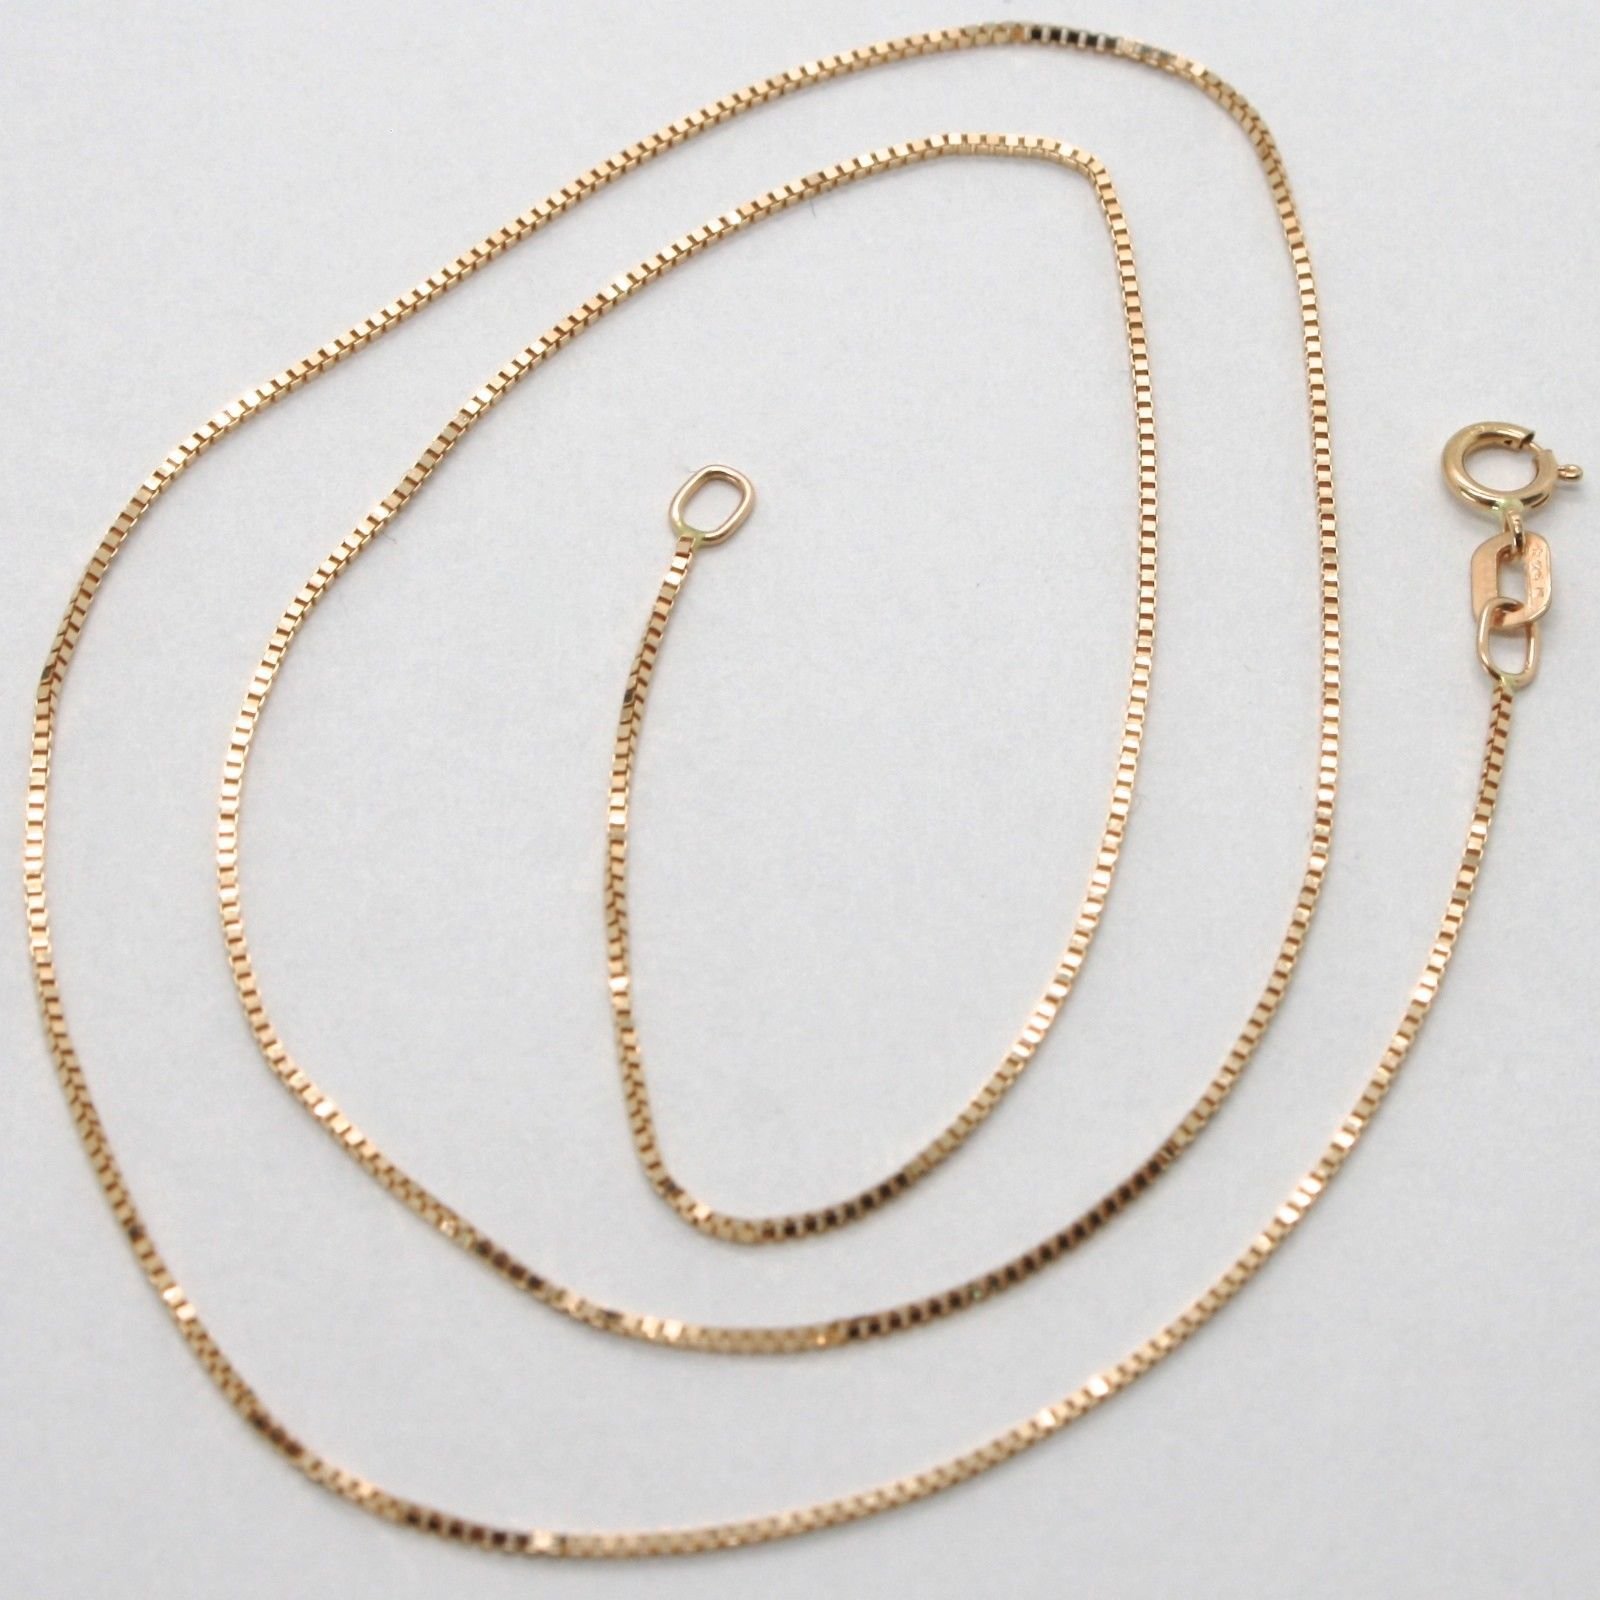 18K ROSE GOLD CHAIN MINI 0.8 MM VENETIAN SQUARE LINK 17.7 INCHES MADE IN ITALY